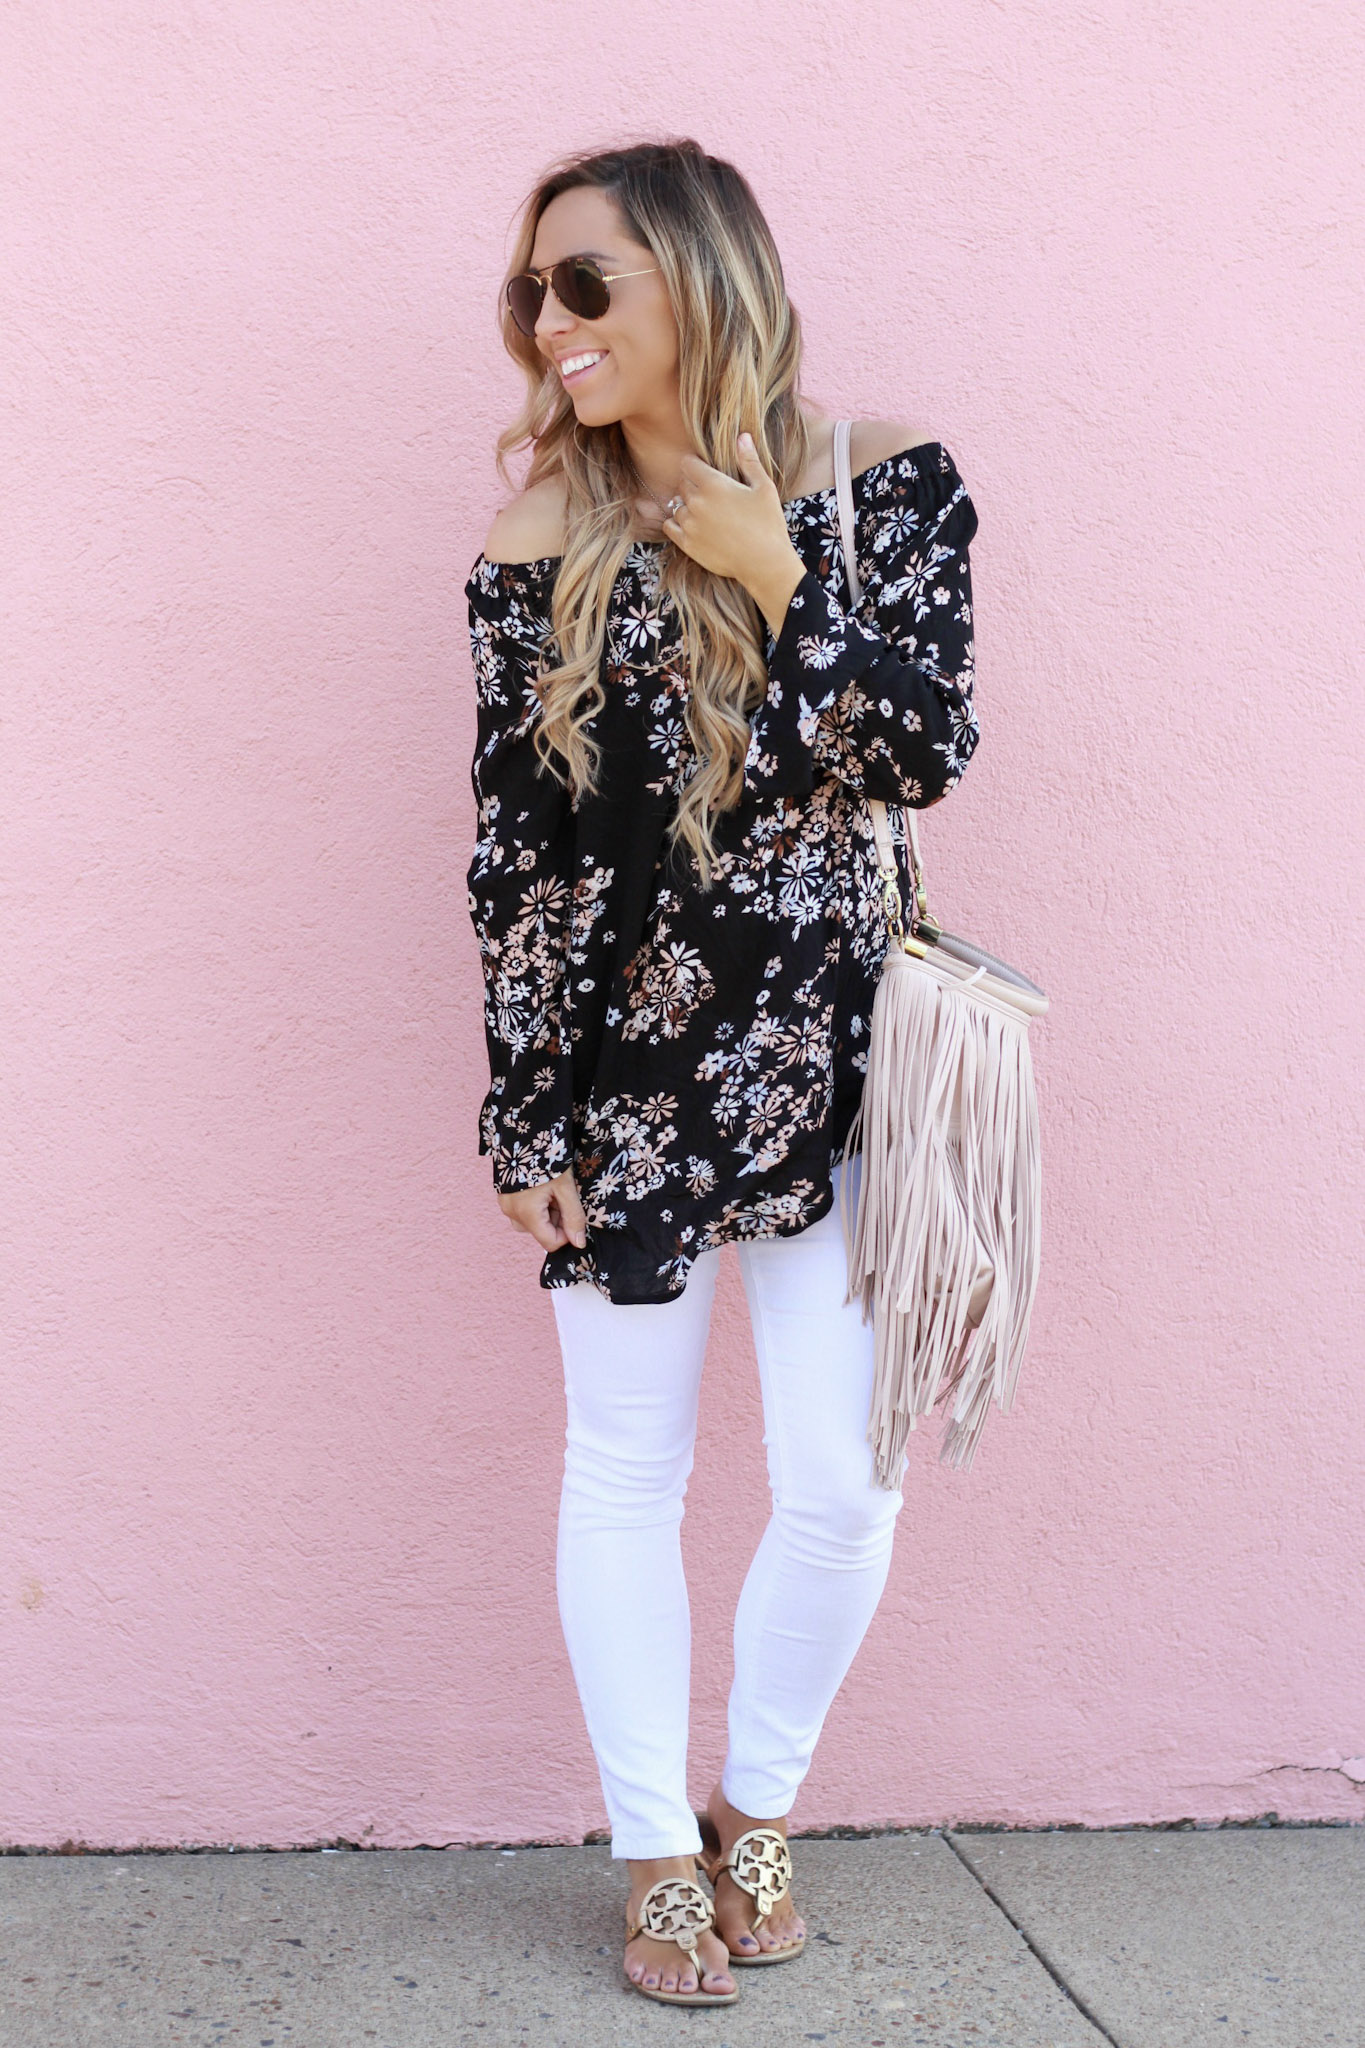 accordingtoblaire, according to blaire, floral ots top, nordstrom, fashion blogger, rva blogger, fringe bag, white skinny jeans, maternity jeans, hair extensions, spring 2017 trends